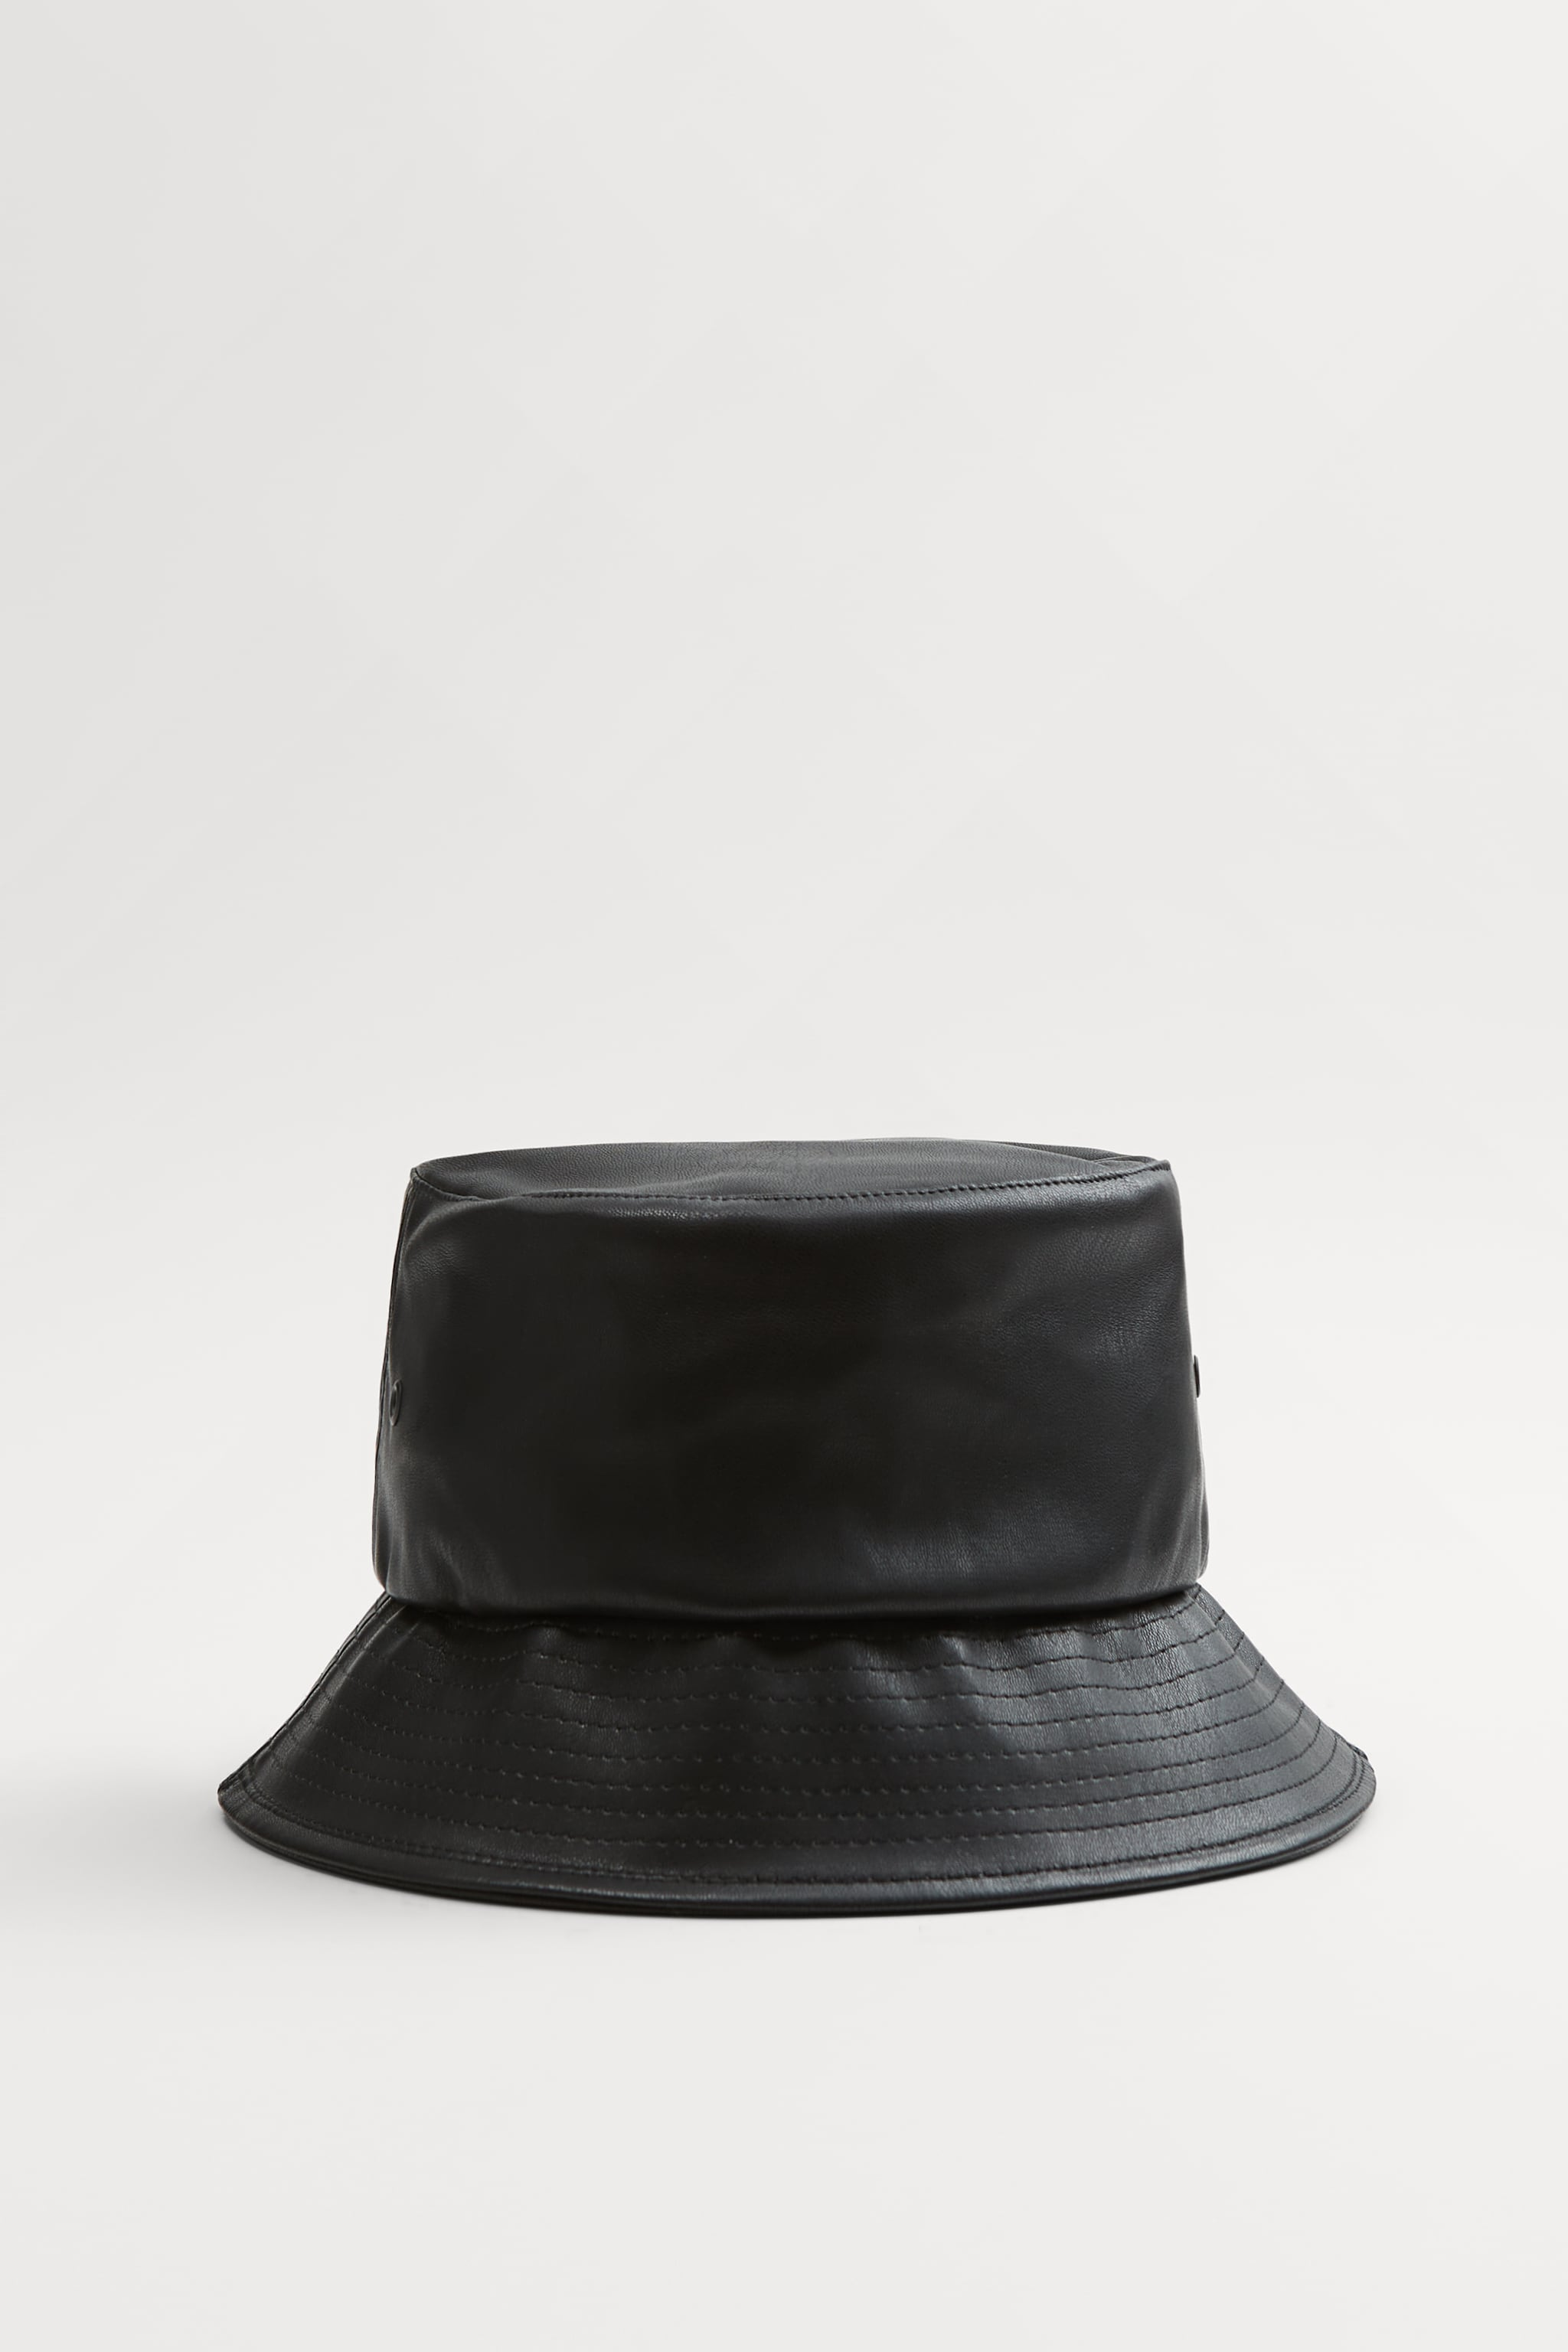 Zara FAUX LEATHER BUCKET HAT